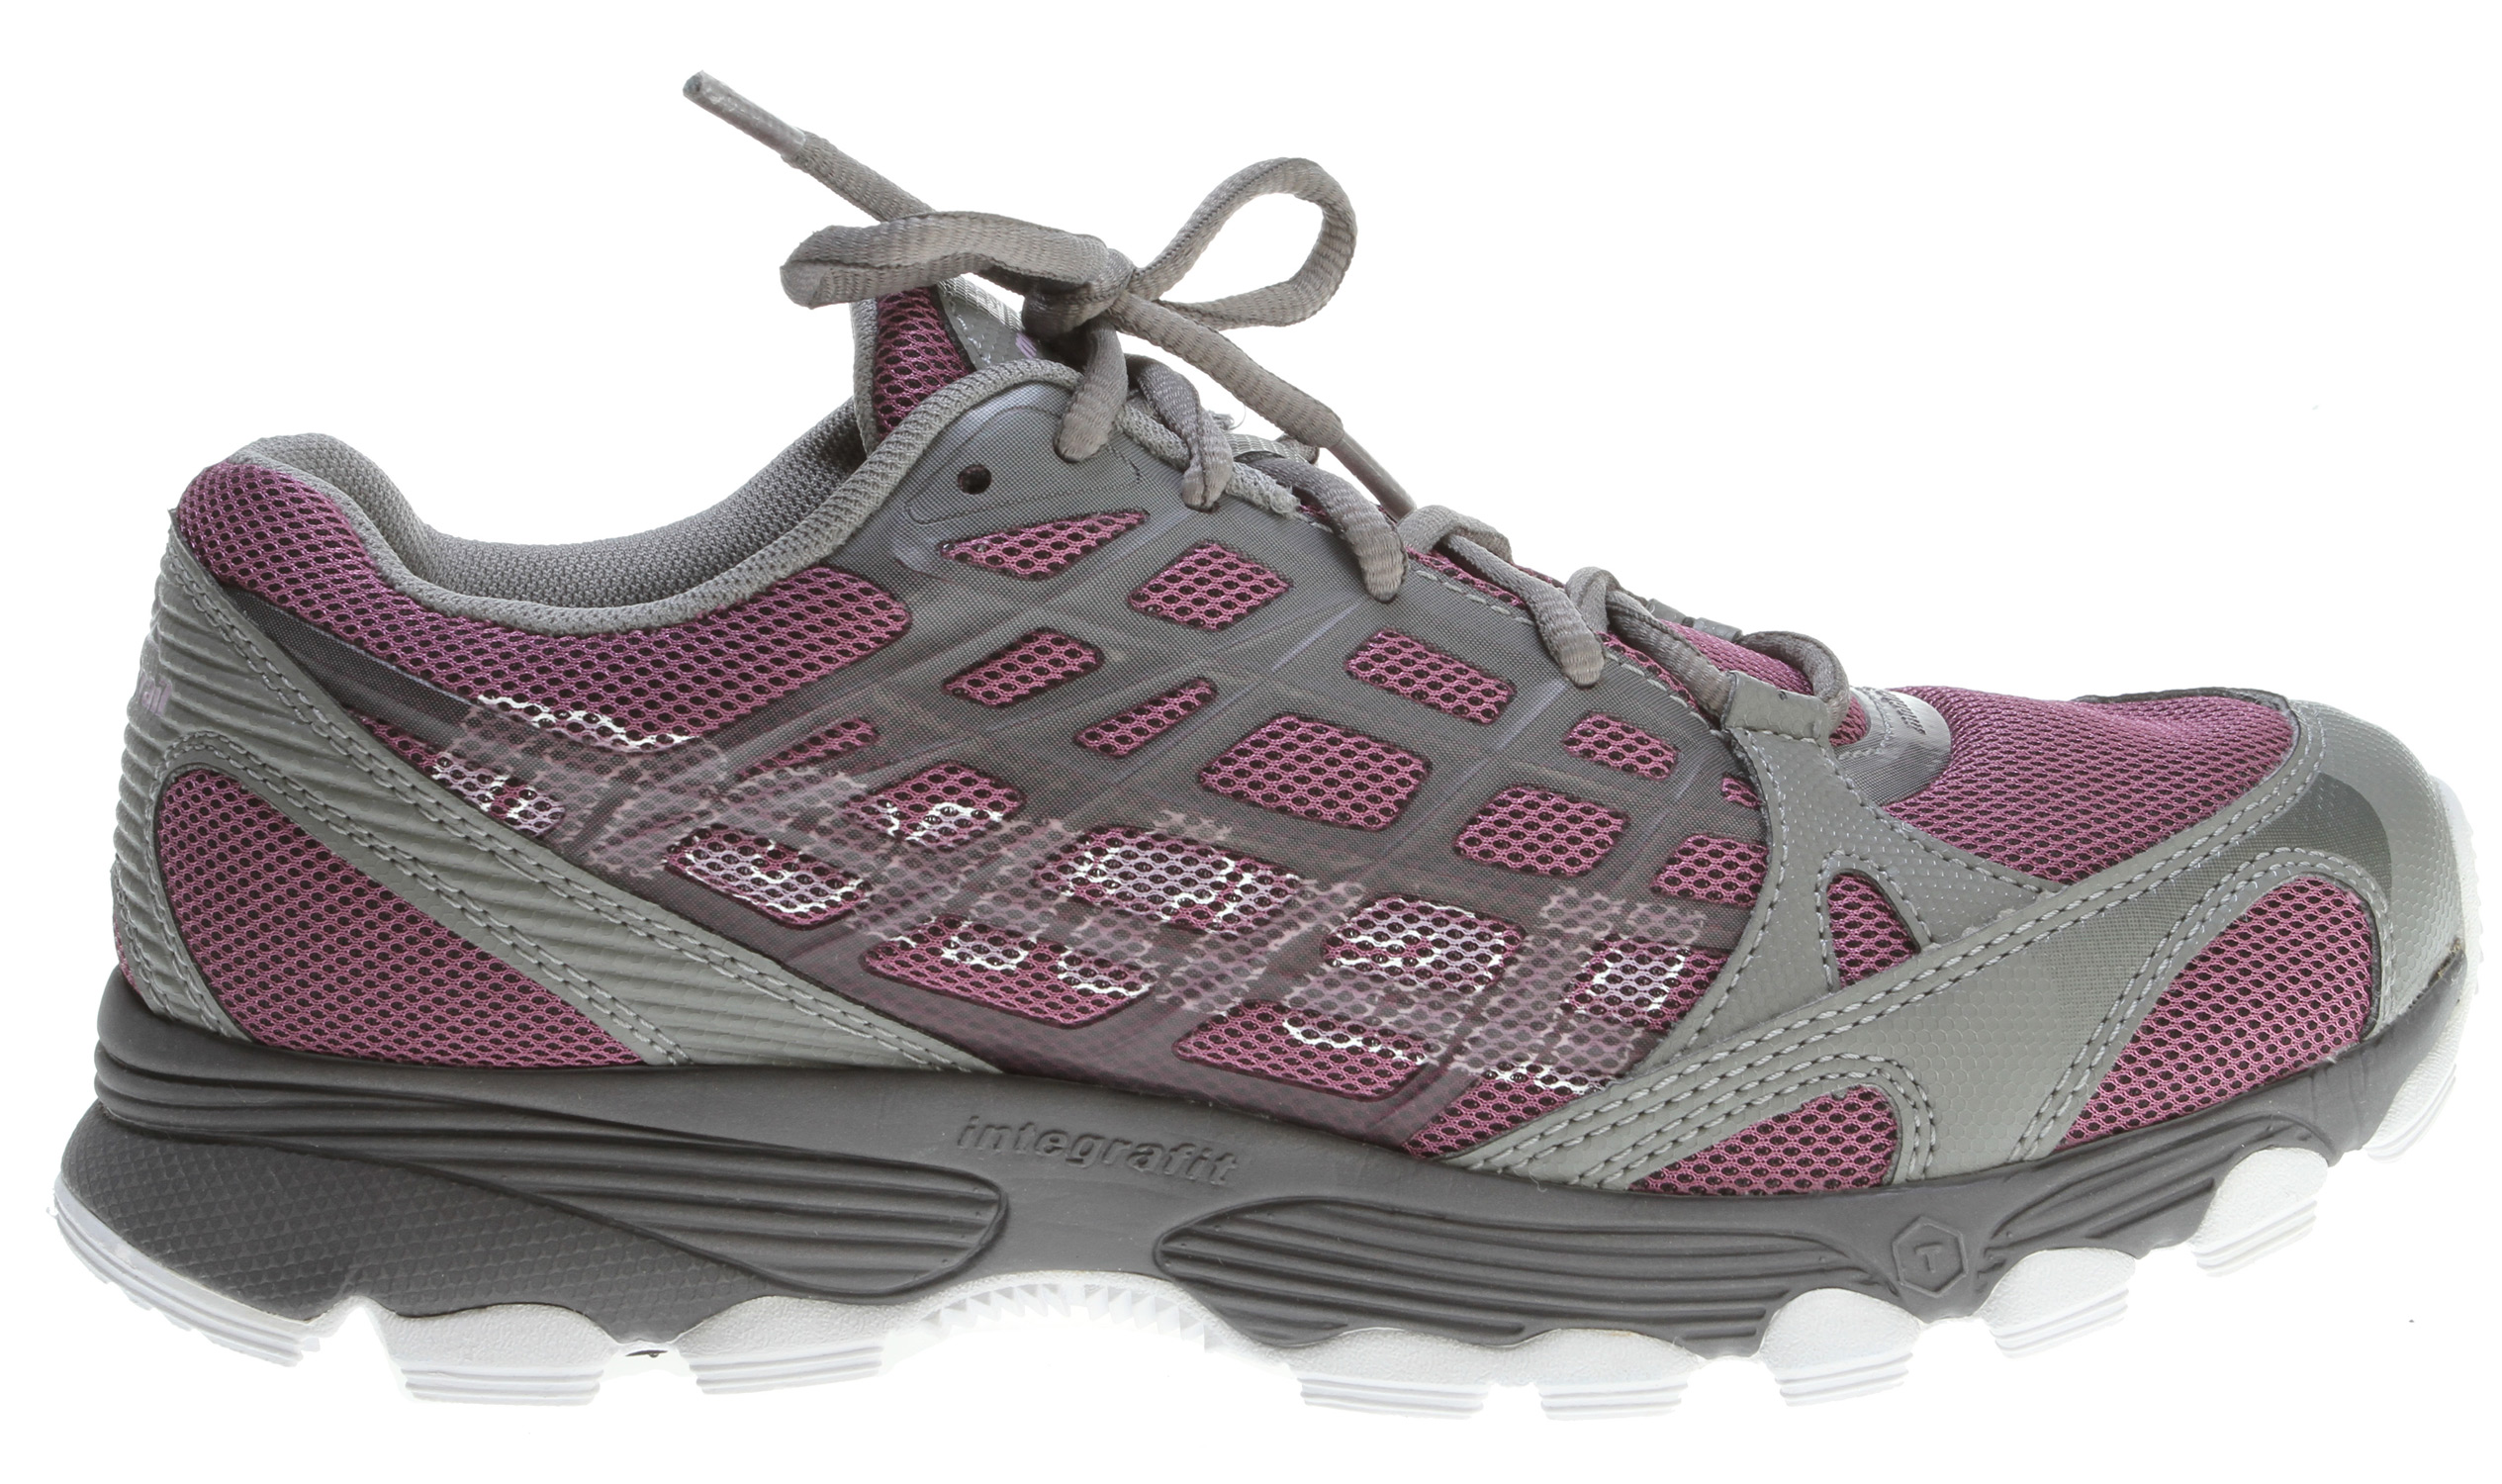 Camp and Hike Outstanding cushioning for a smooth ride over all types of trailsKey Features of the Montrail Rockridge Hiking Shoes: Weight: 9.2 oz / 261 g Durometer: 55 Asker C (+/-3 degrees) Fit Notes: Snug heel with a wider forefoot - $62.95